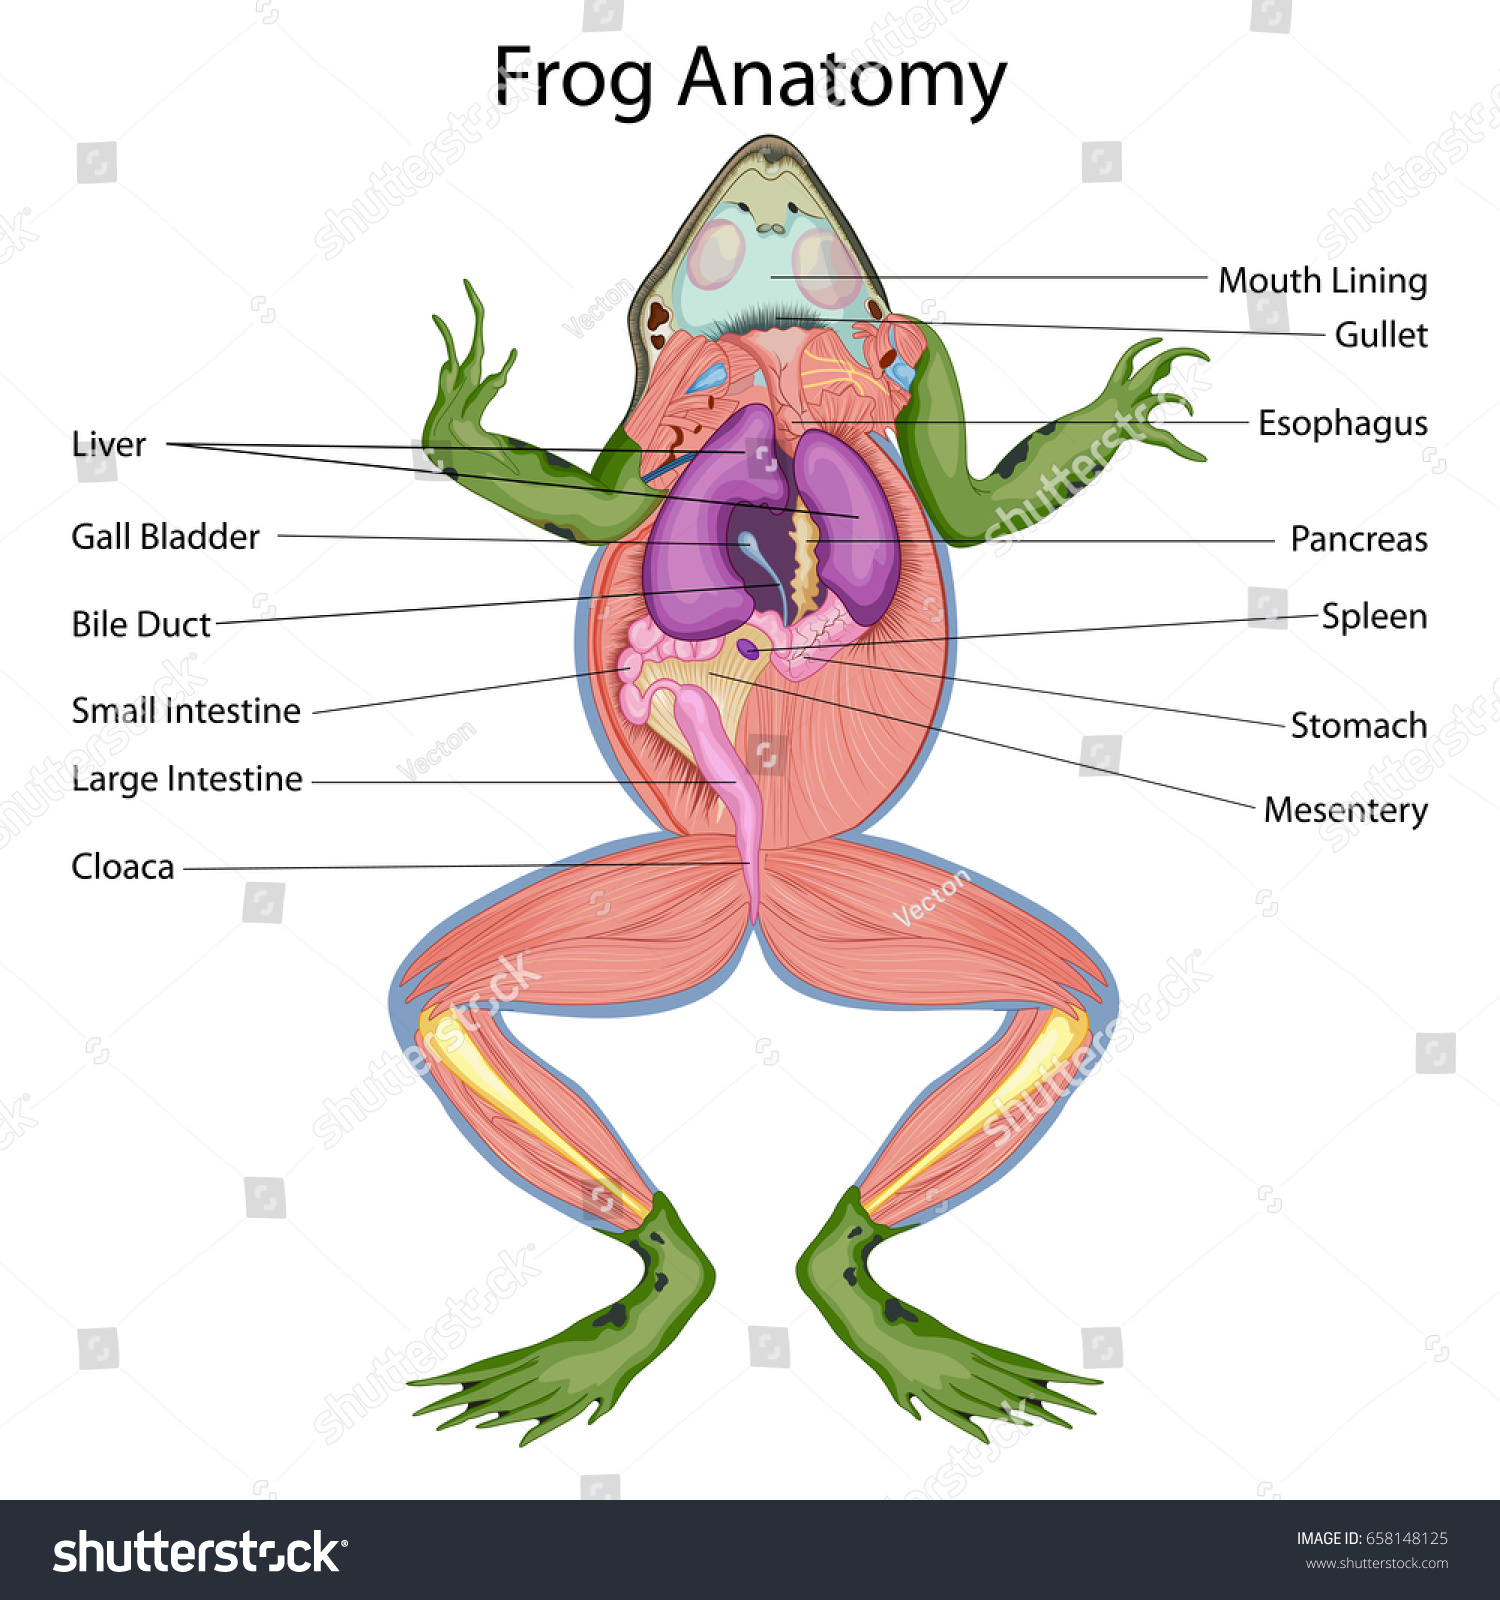 Frog internal organs diagram